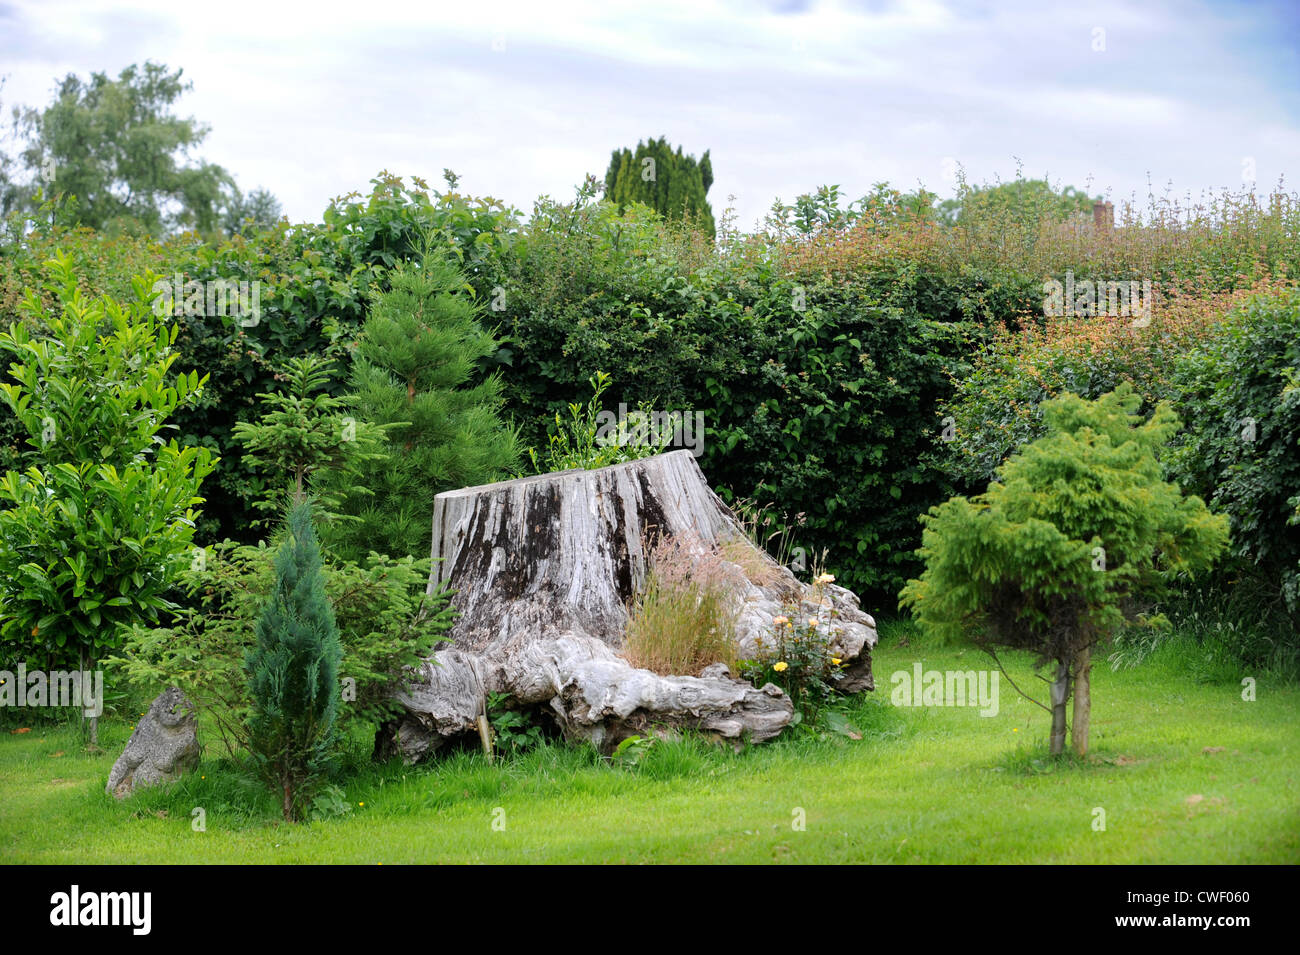 A tree stump in a garden England UK - Stock Image